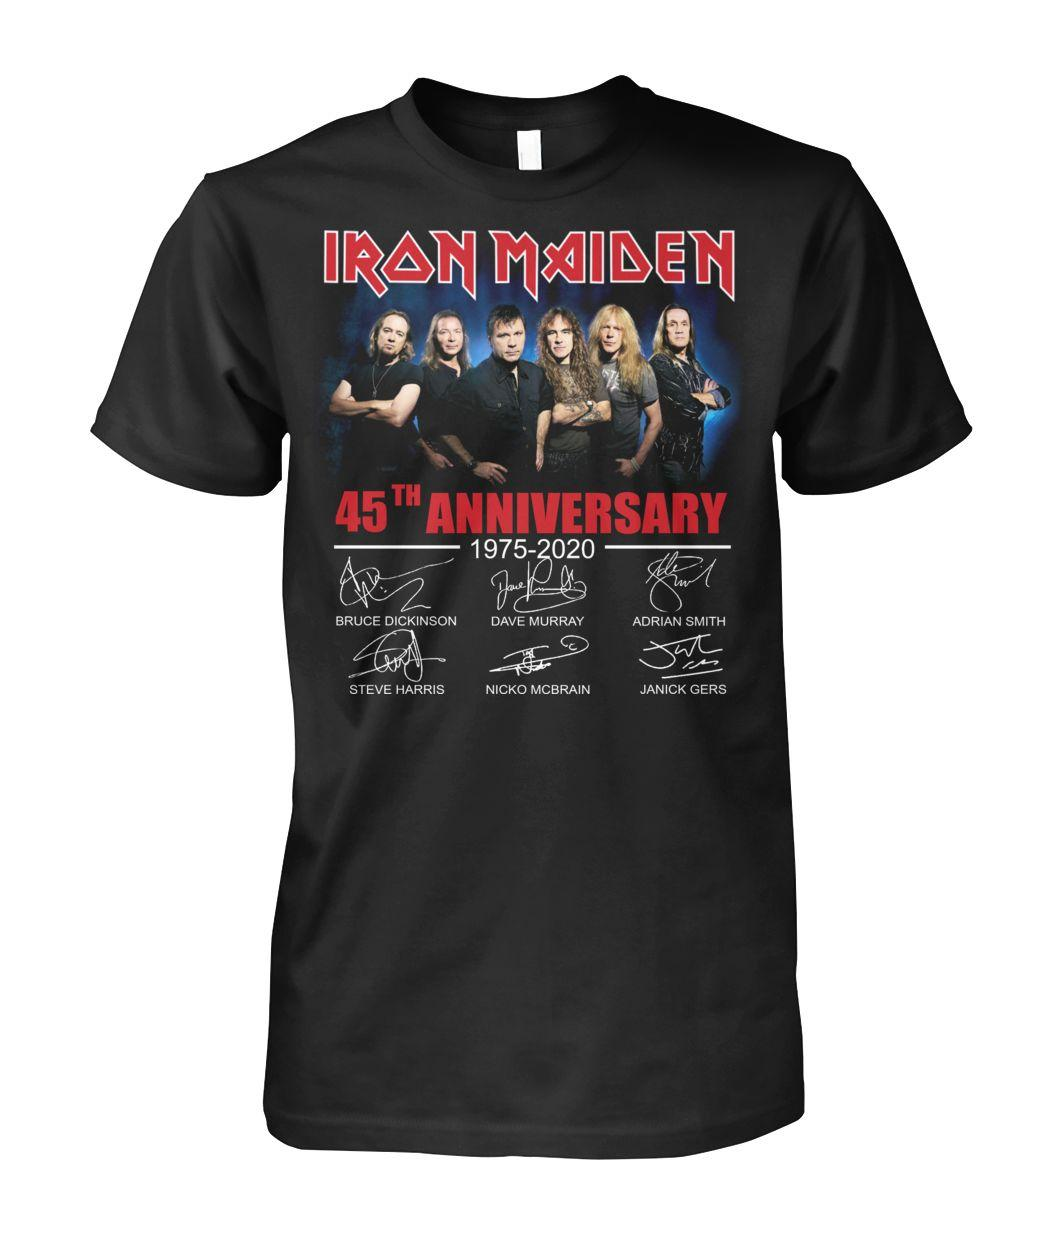 Official Iron Maiden 45th Anniversary 1975 2020 signature shirt